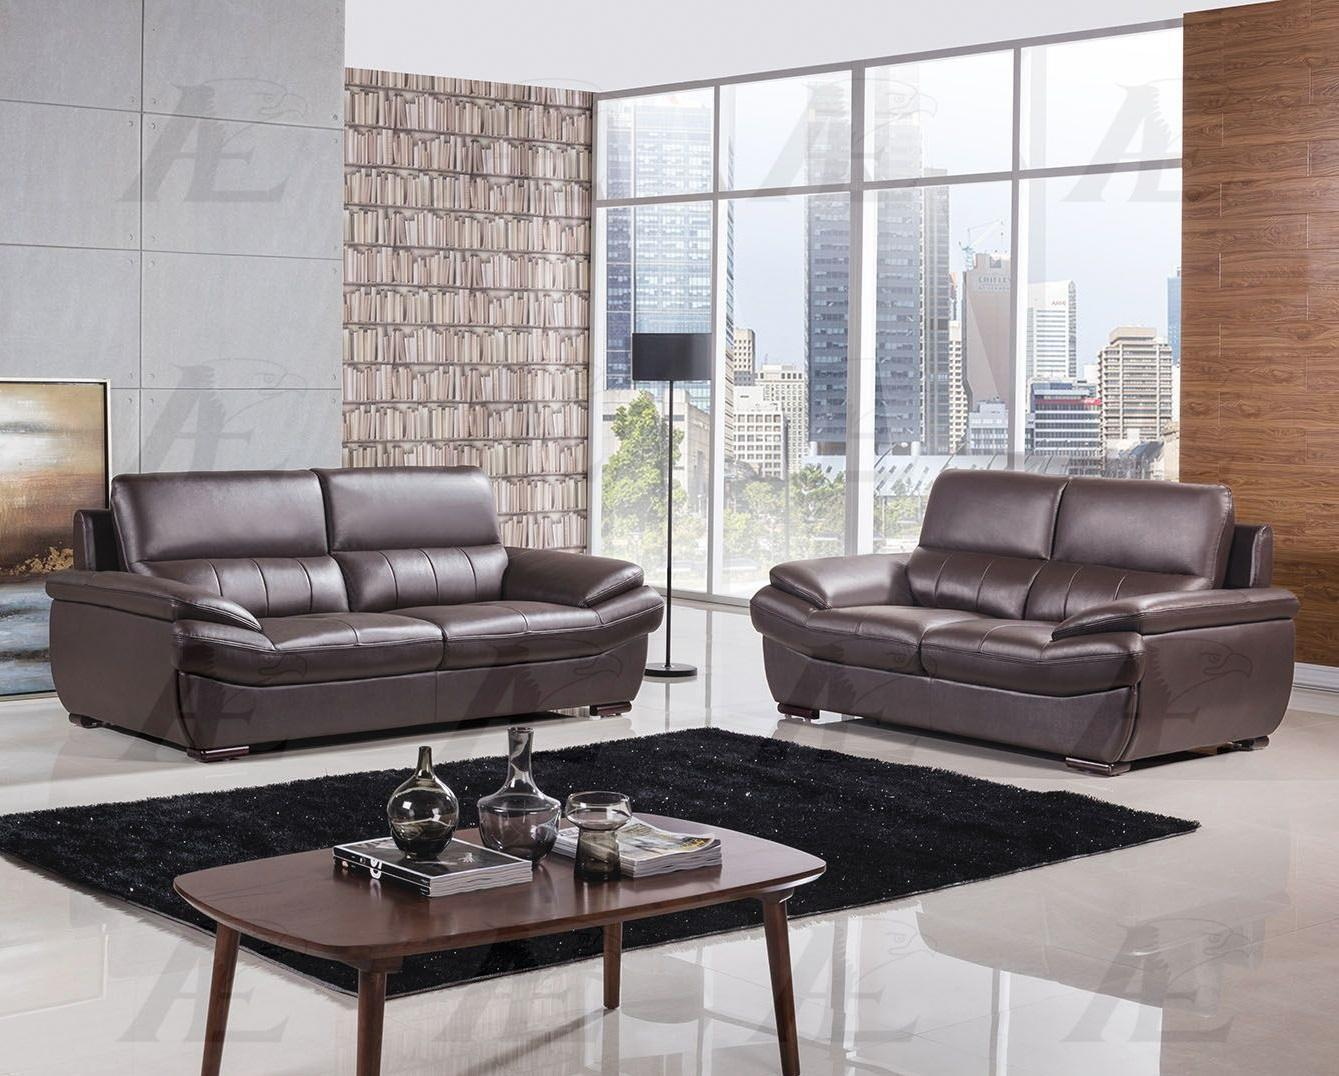 American Eagle EK-B305 Contemporary Genuine Leather Dark Chocolate Sofa Set 2pcs